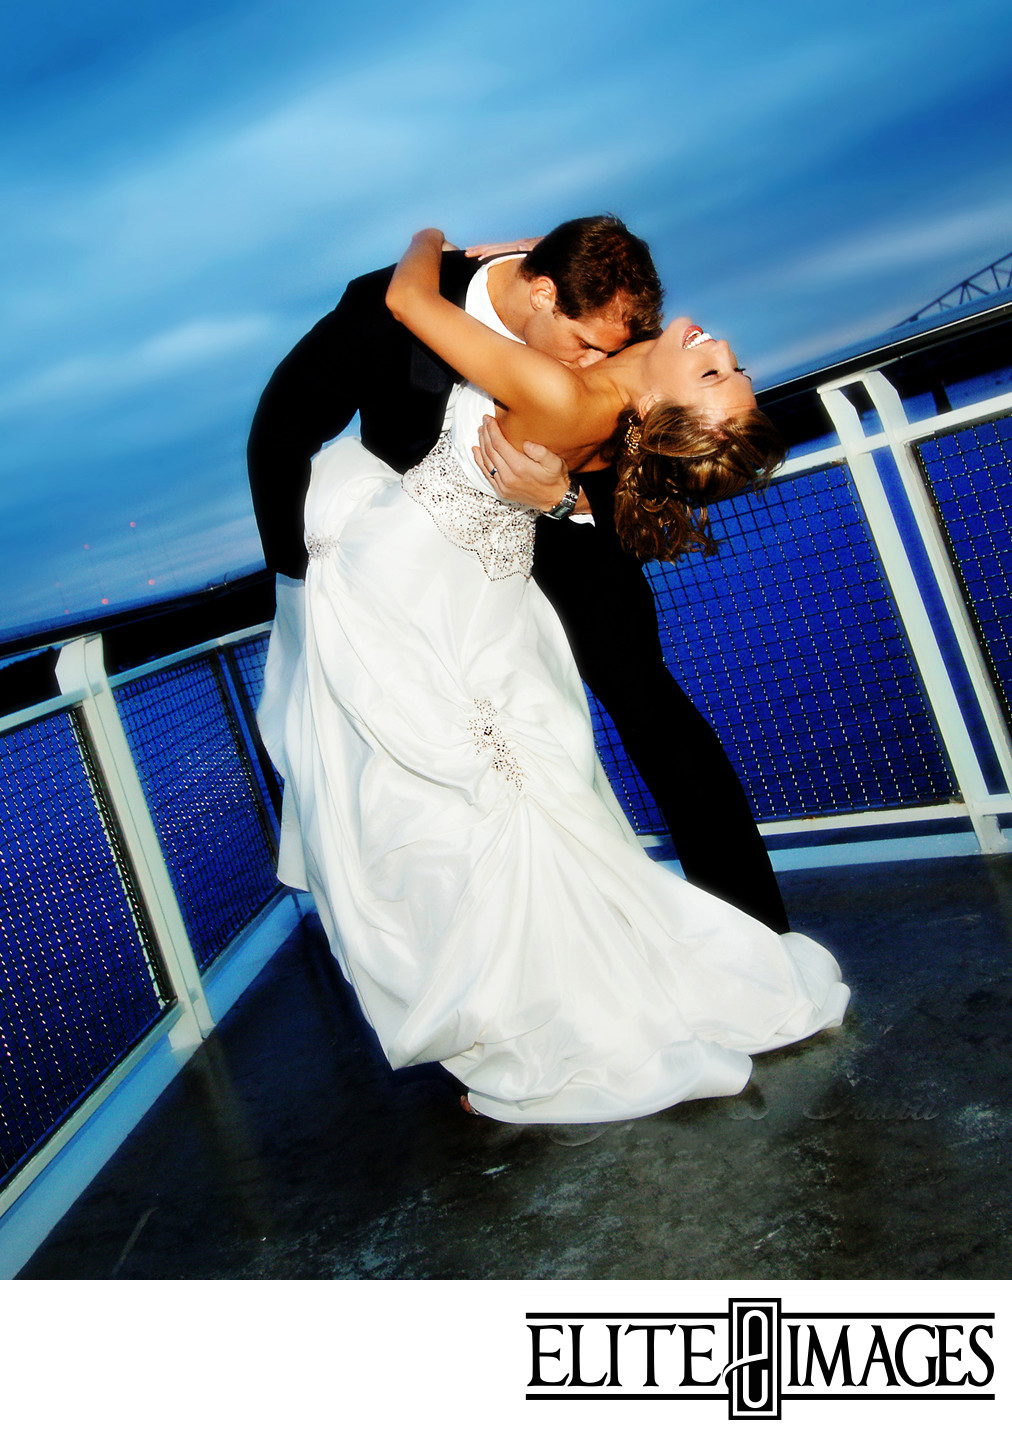 Wedding Photographers near Dubuque